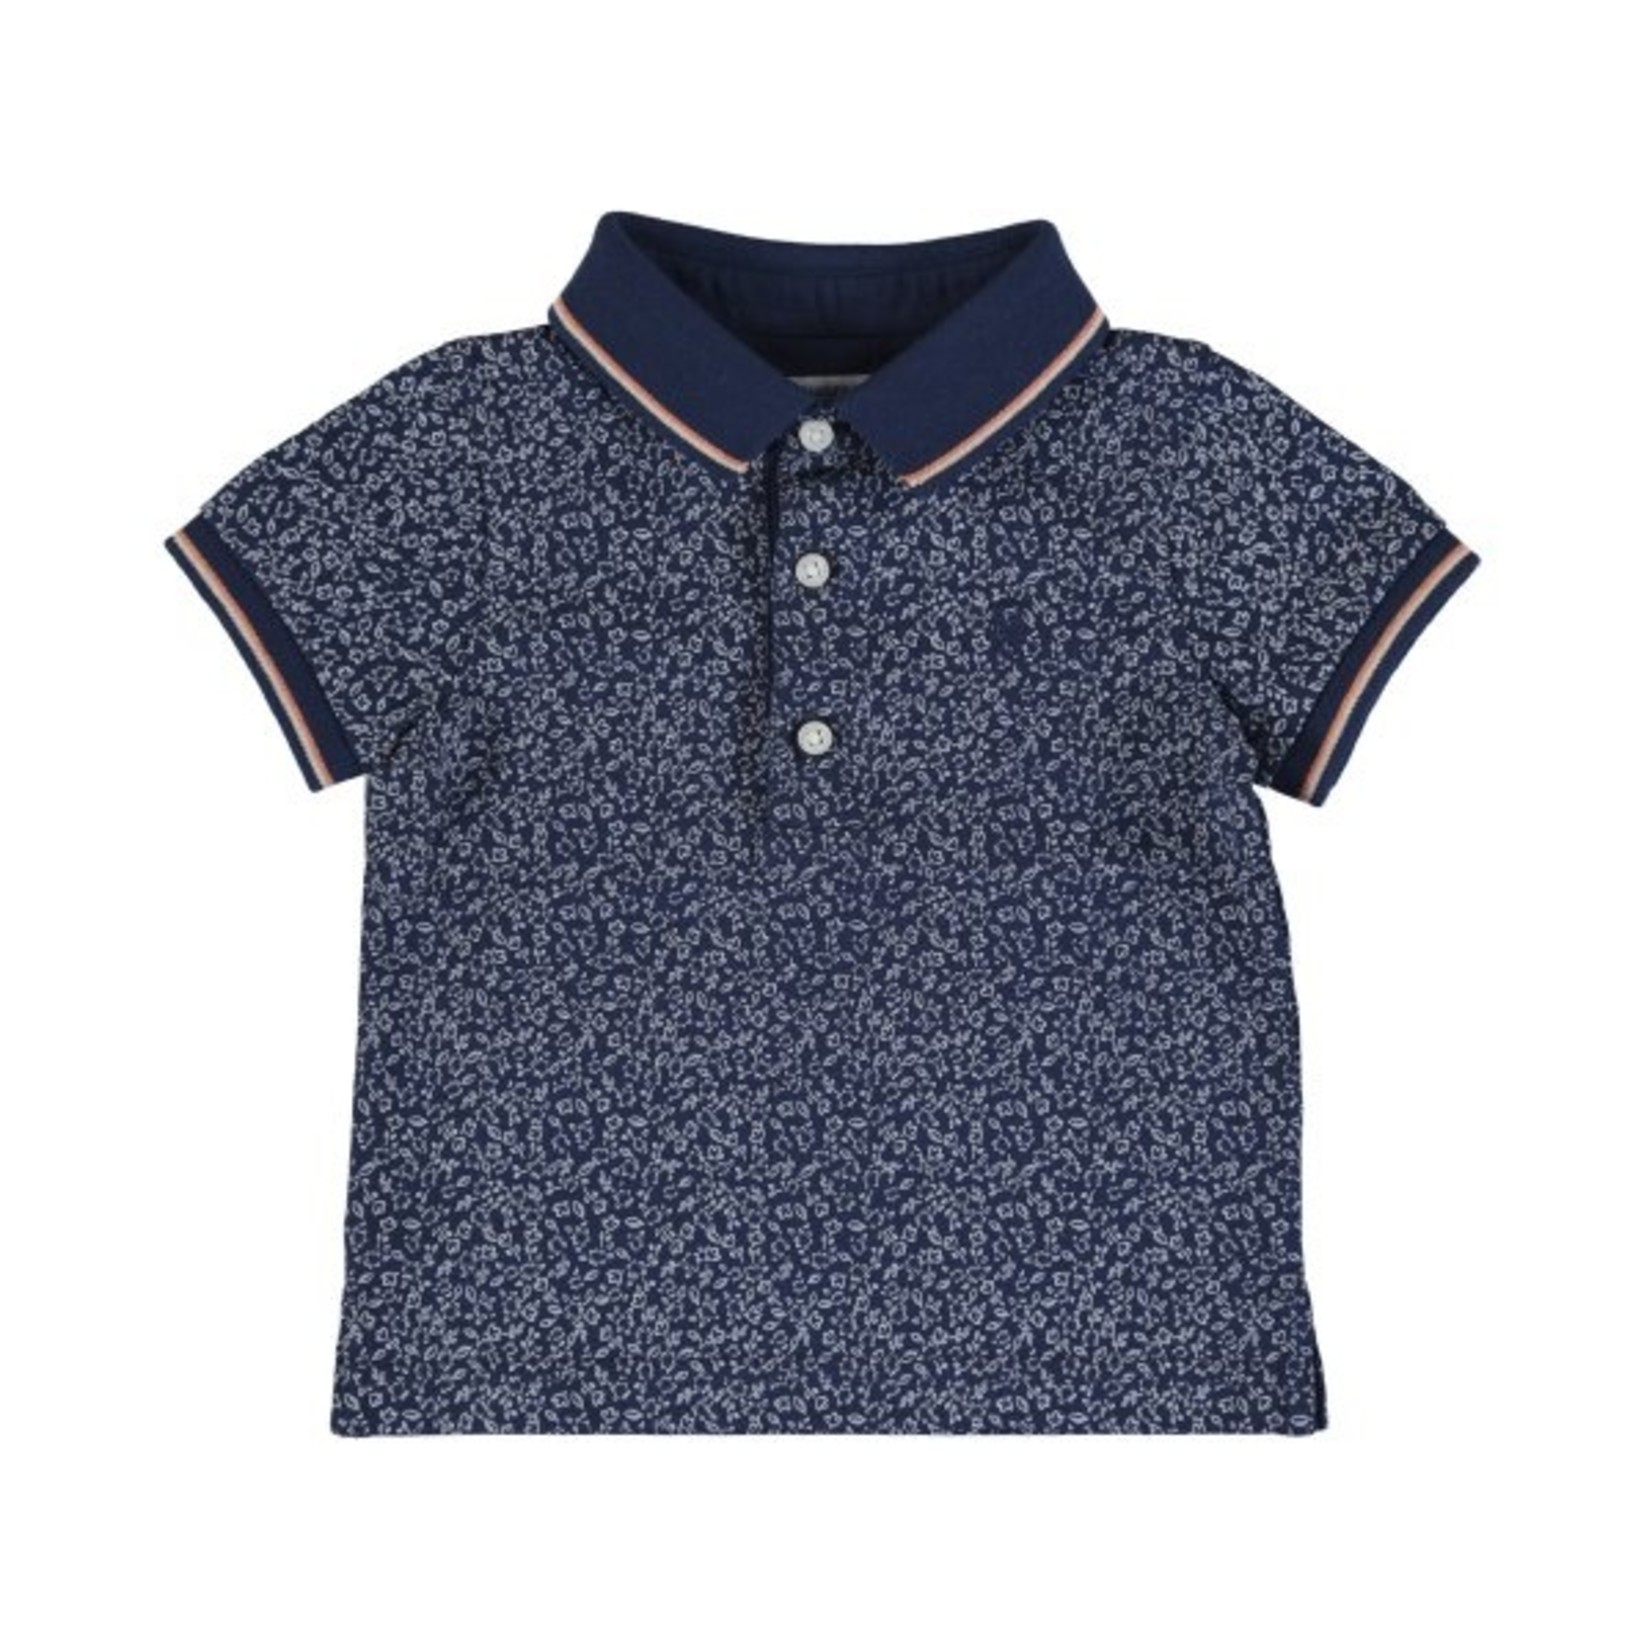 Mayoral S/s small print t-shirt      Blue